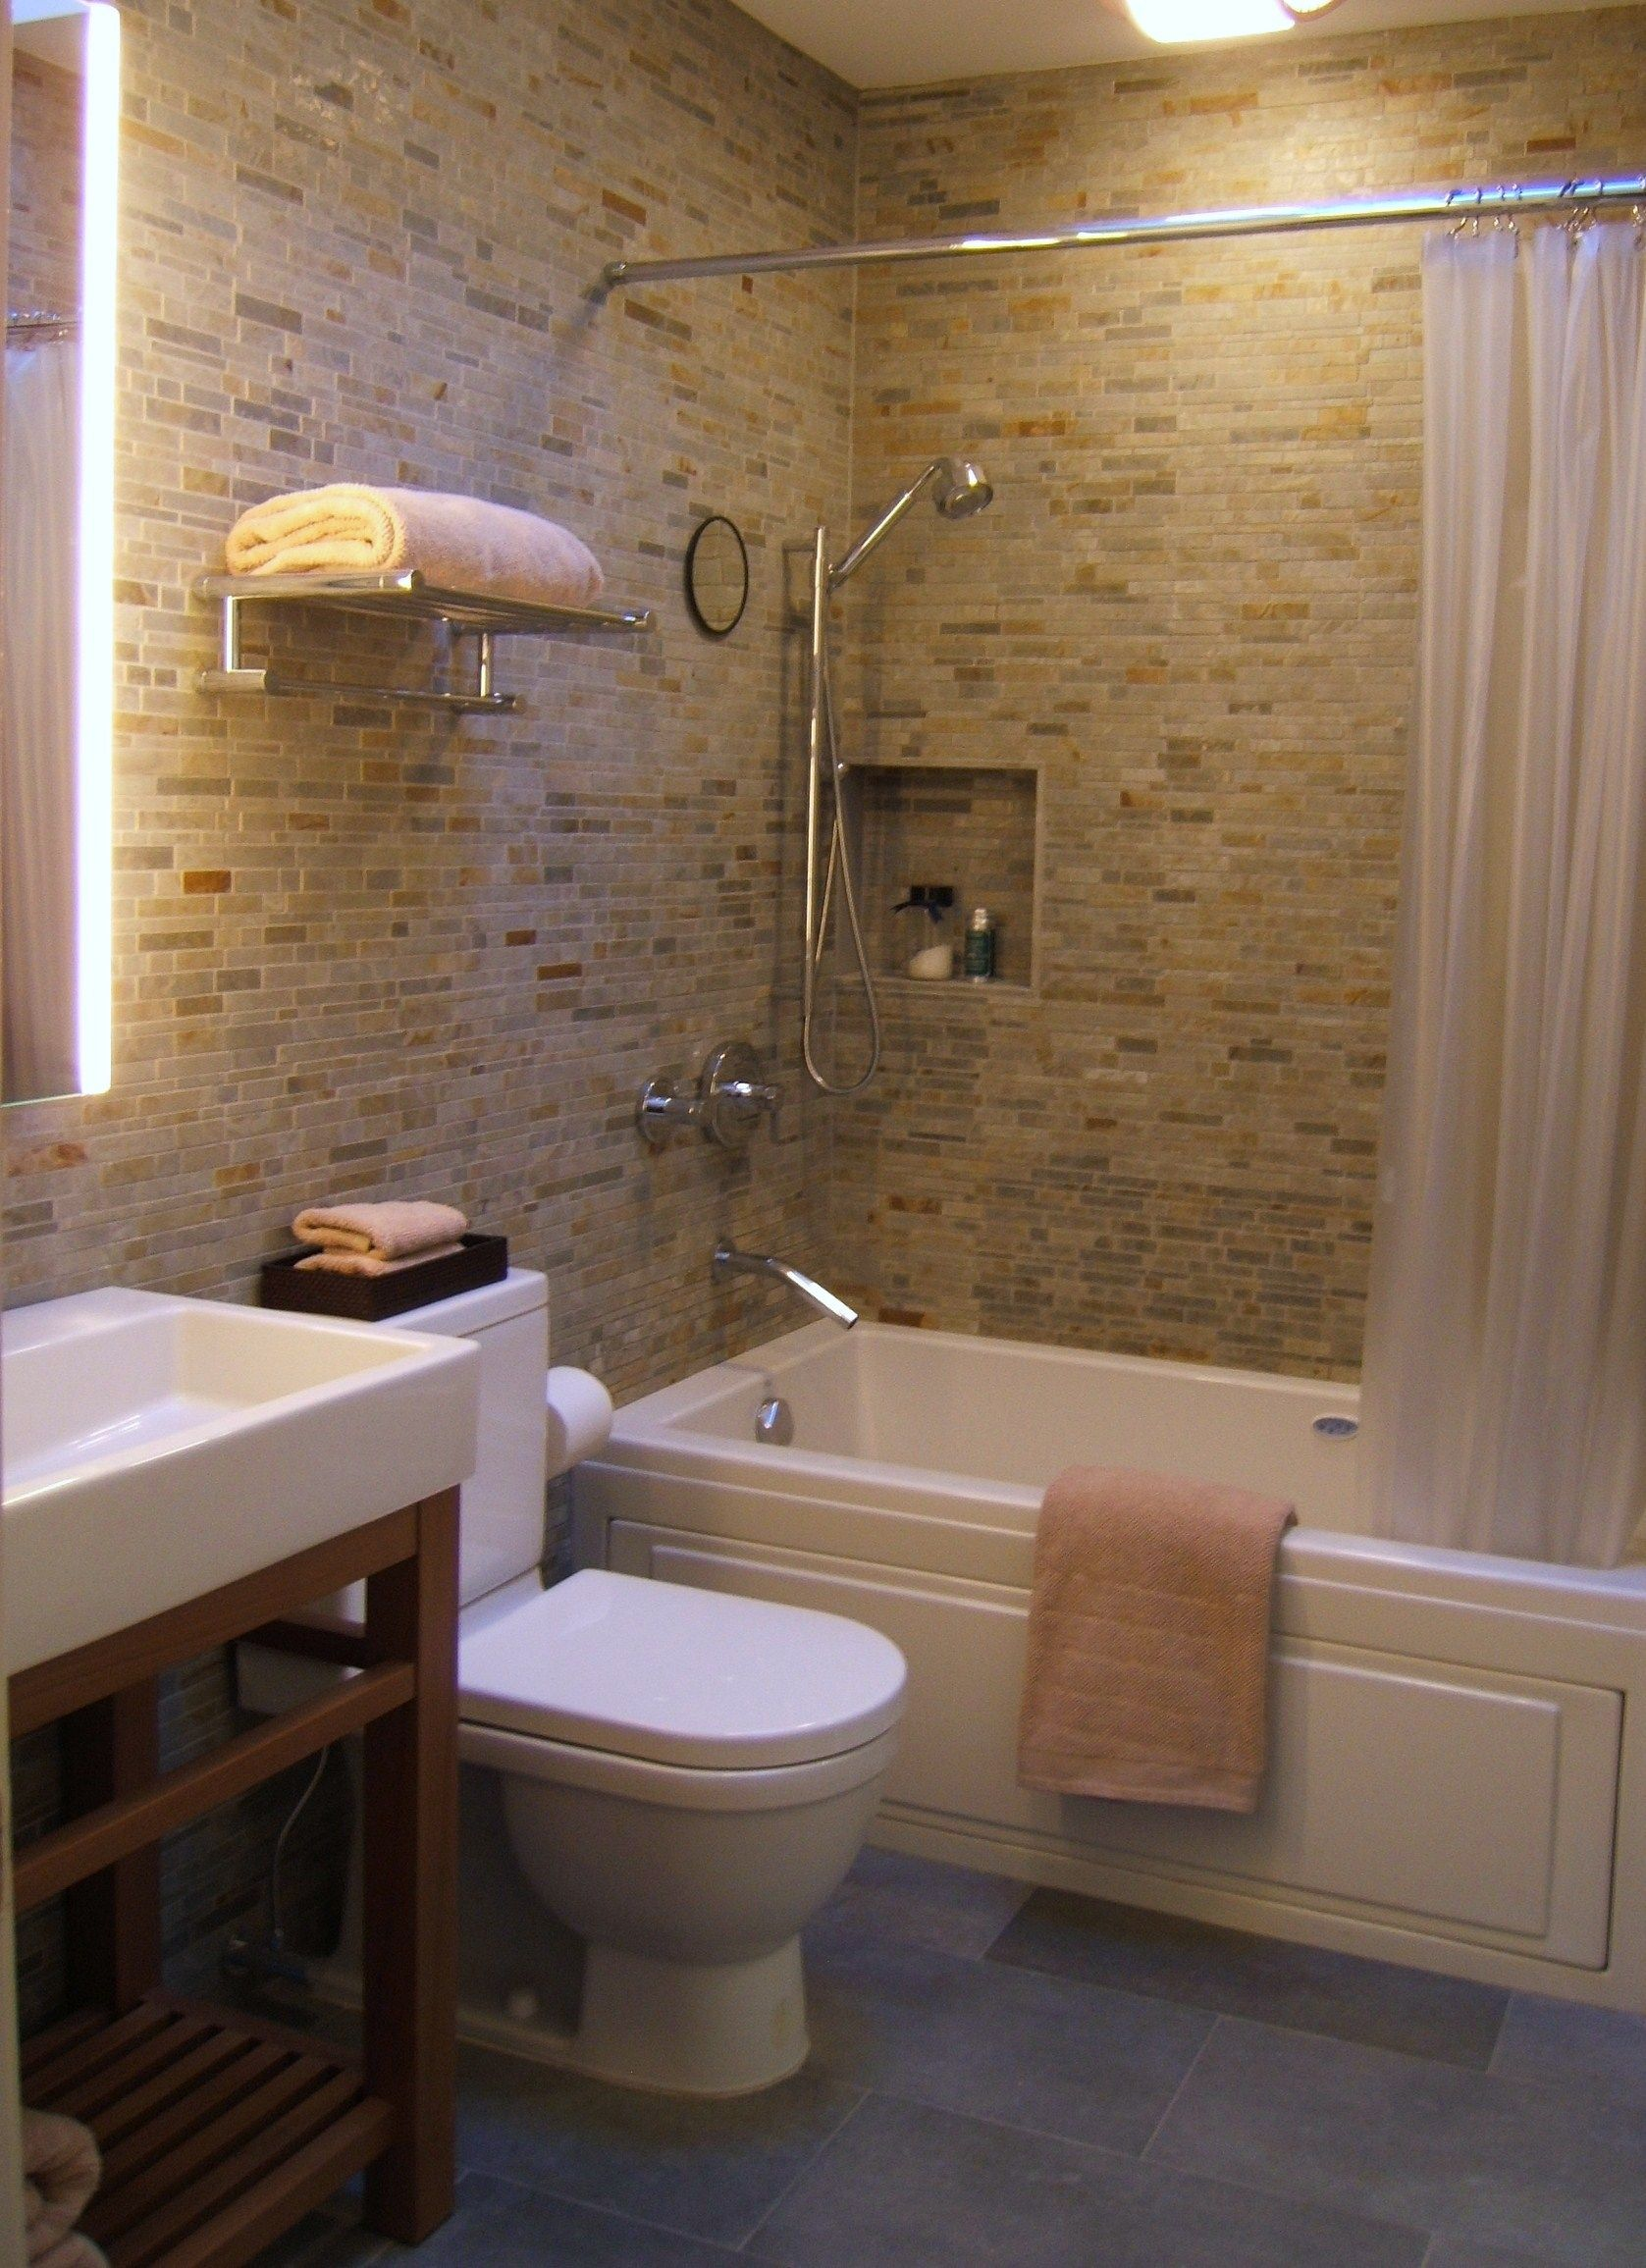 Small bathroom designs south africa small bath for Small bathroom blueprints